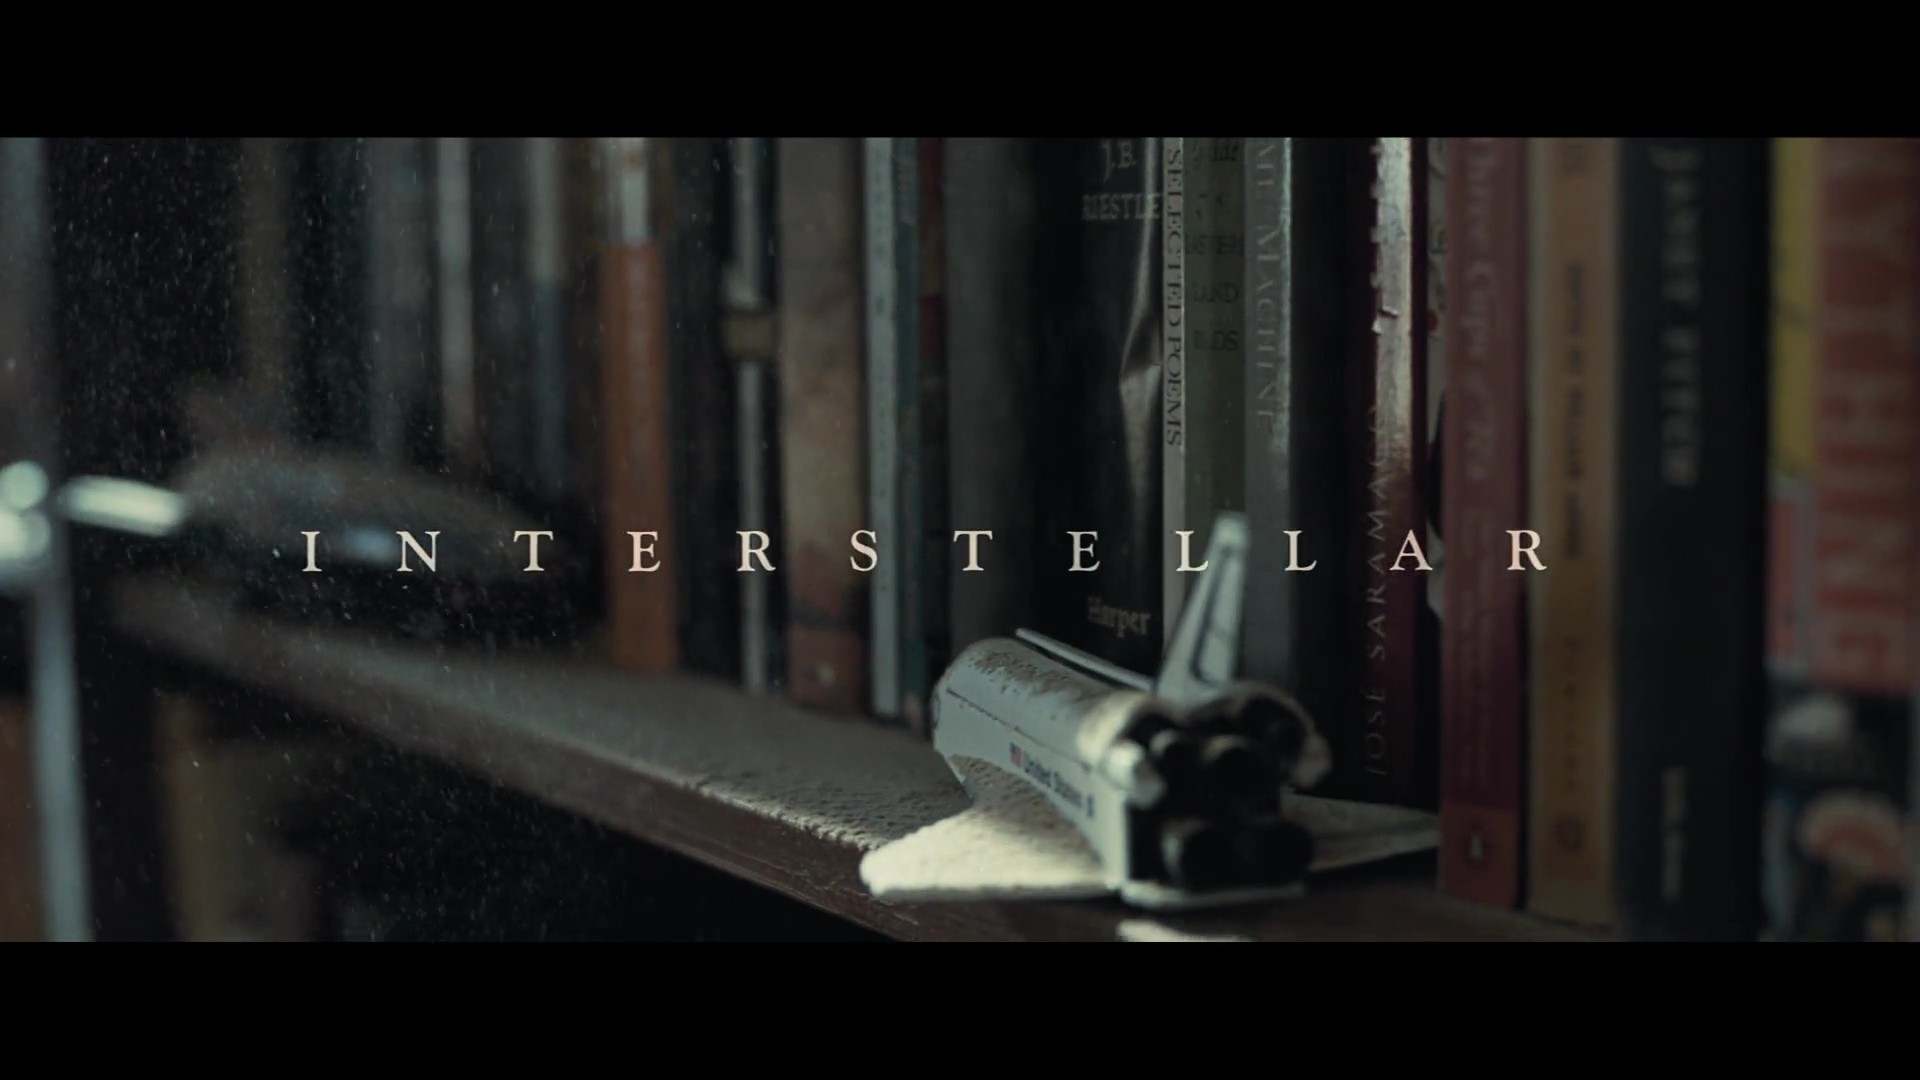 Why it took me so long to watch this? Interstellar edition   Απολύτως  Διαλλακτικός